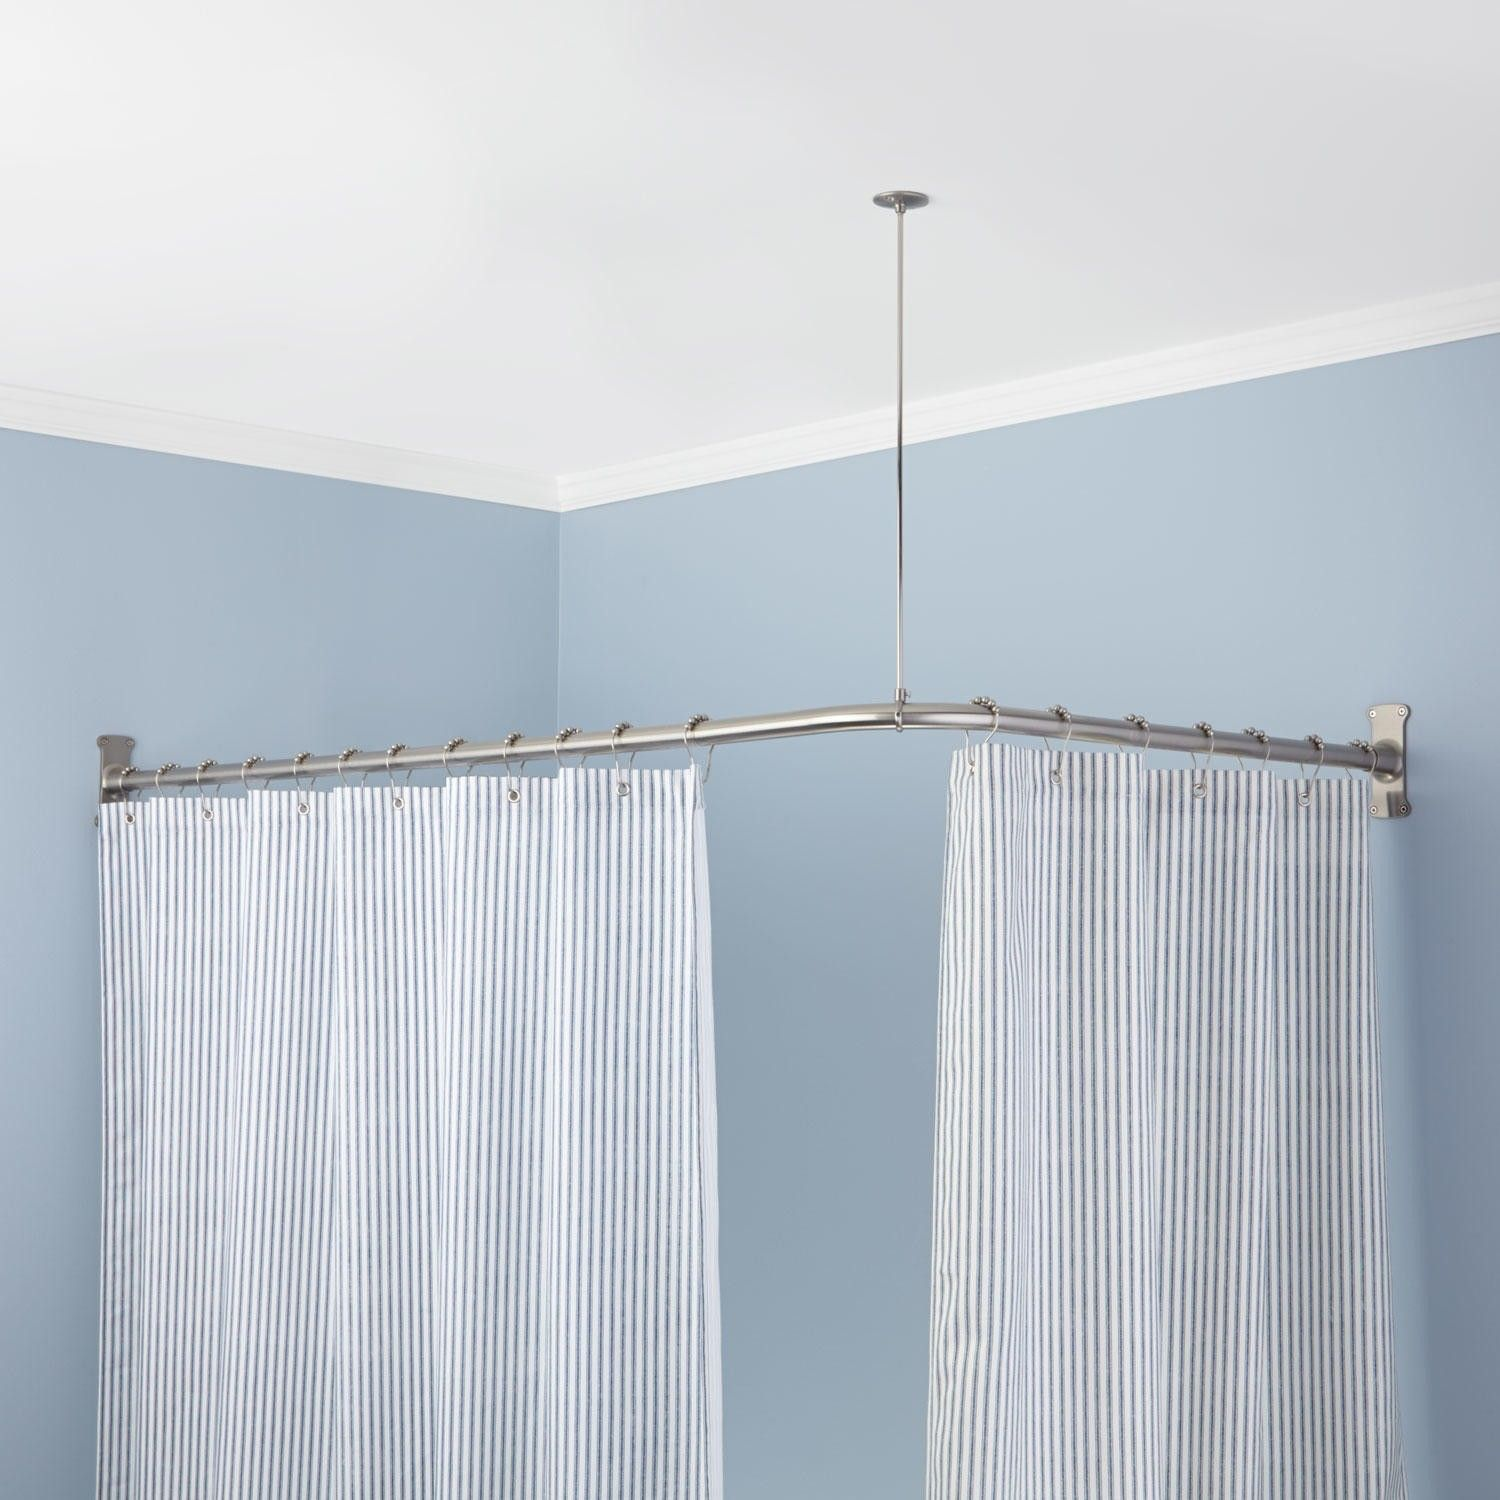 Corner Shower Curtain Rod Signature Hardware 36x72 Chrome